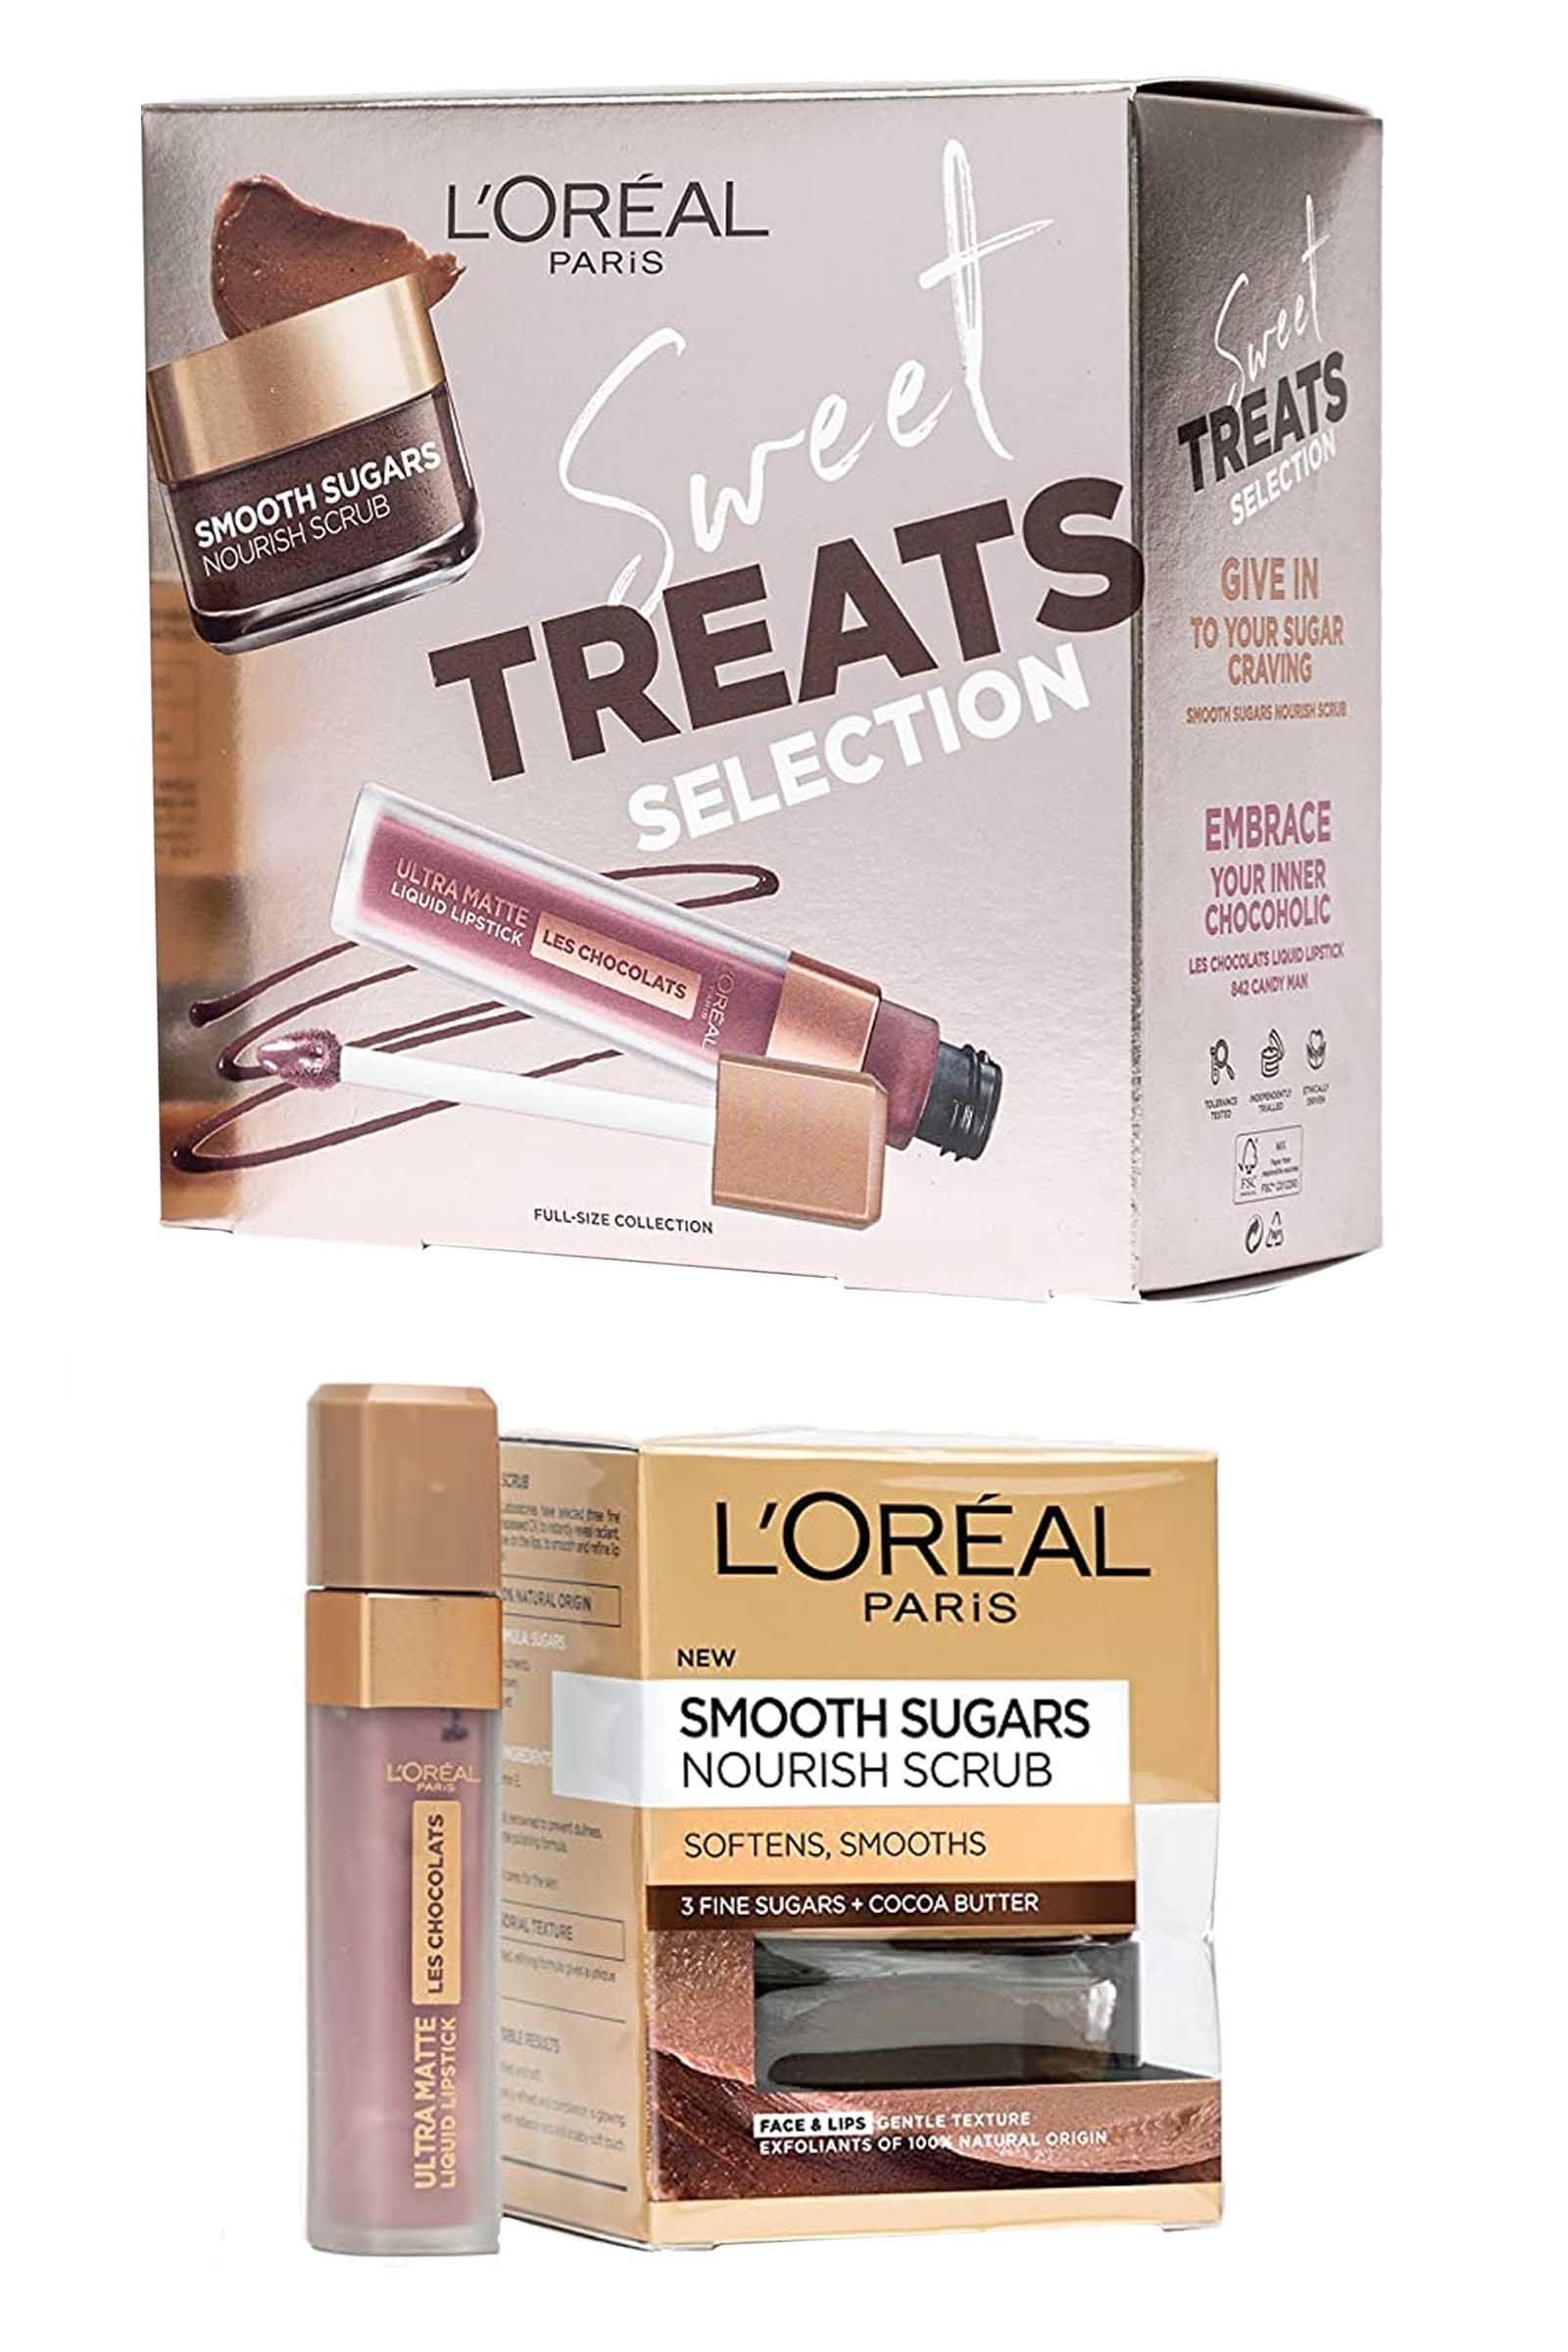 L Oreal L'Oreal Paris Sweet Treats Set-Lipstick Candy Man Smooth Sugars Nourish Scrub 50ml